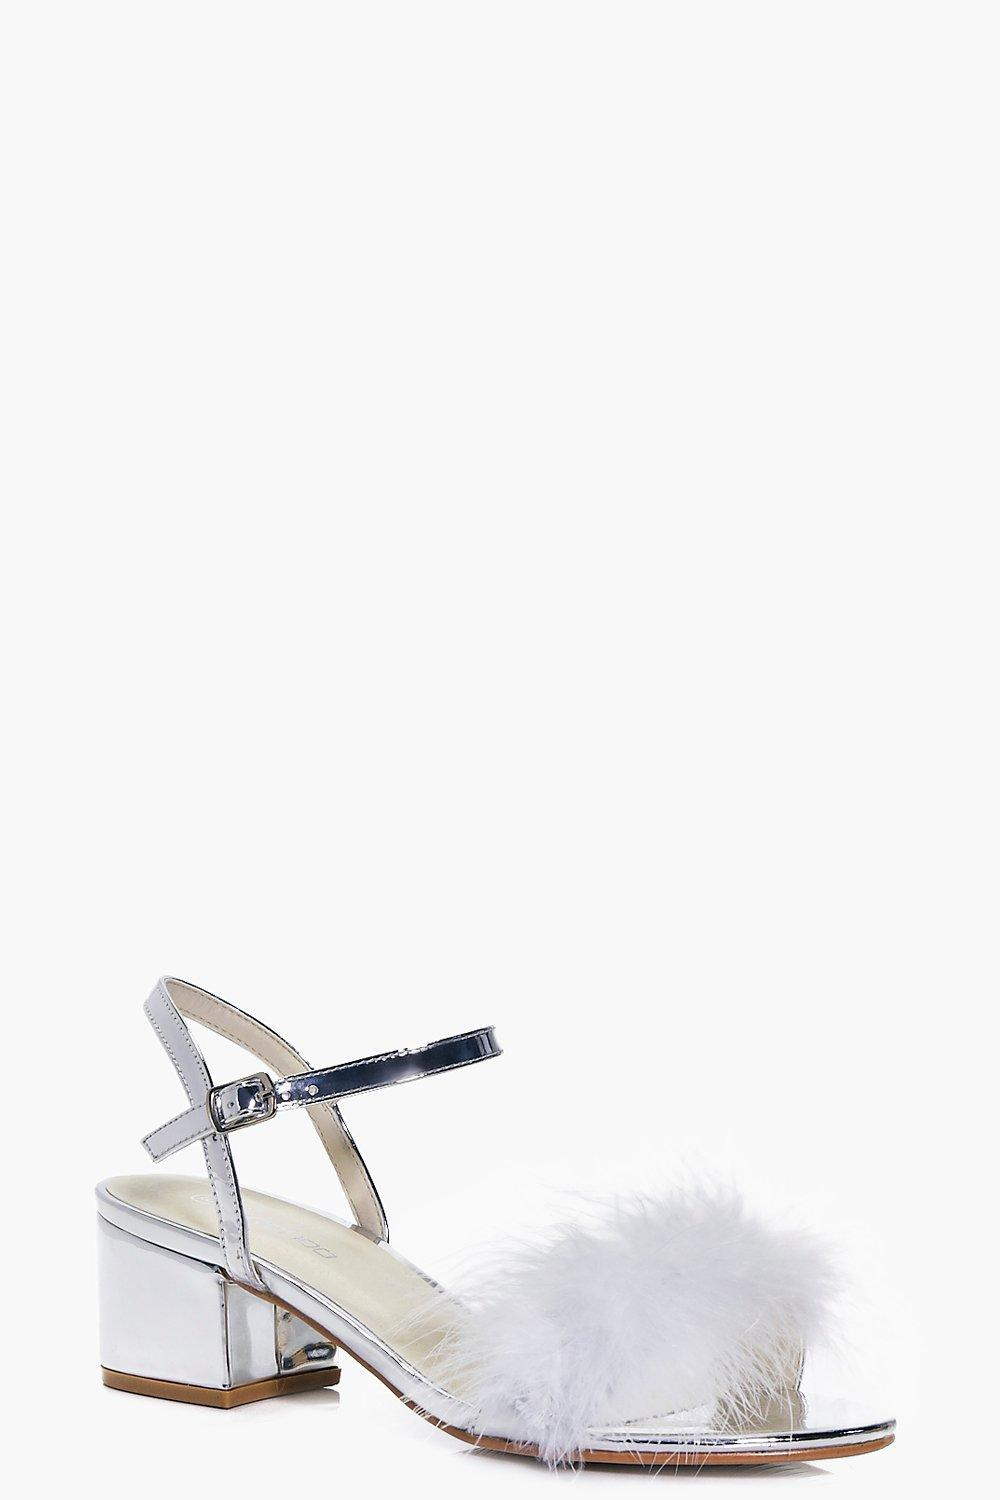 Keira Peeptoe Feather Trim Block Heels